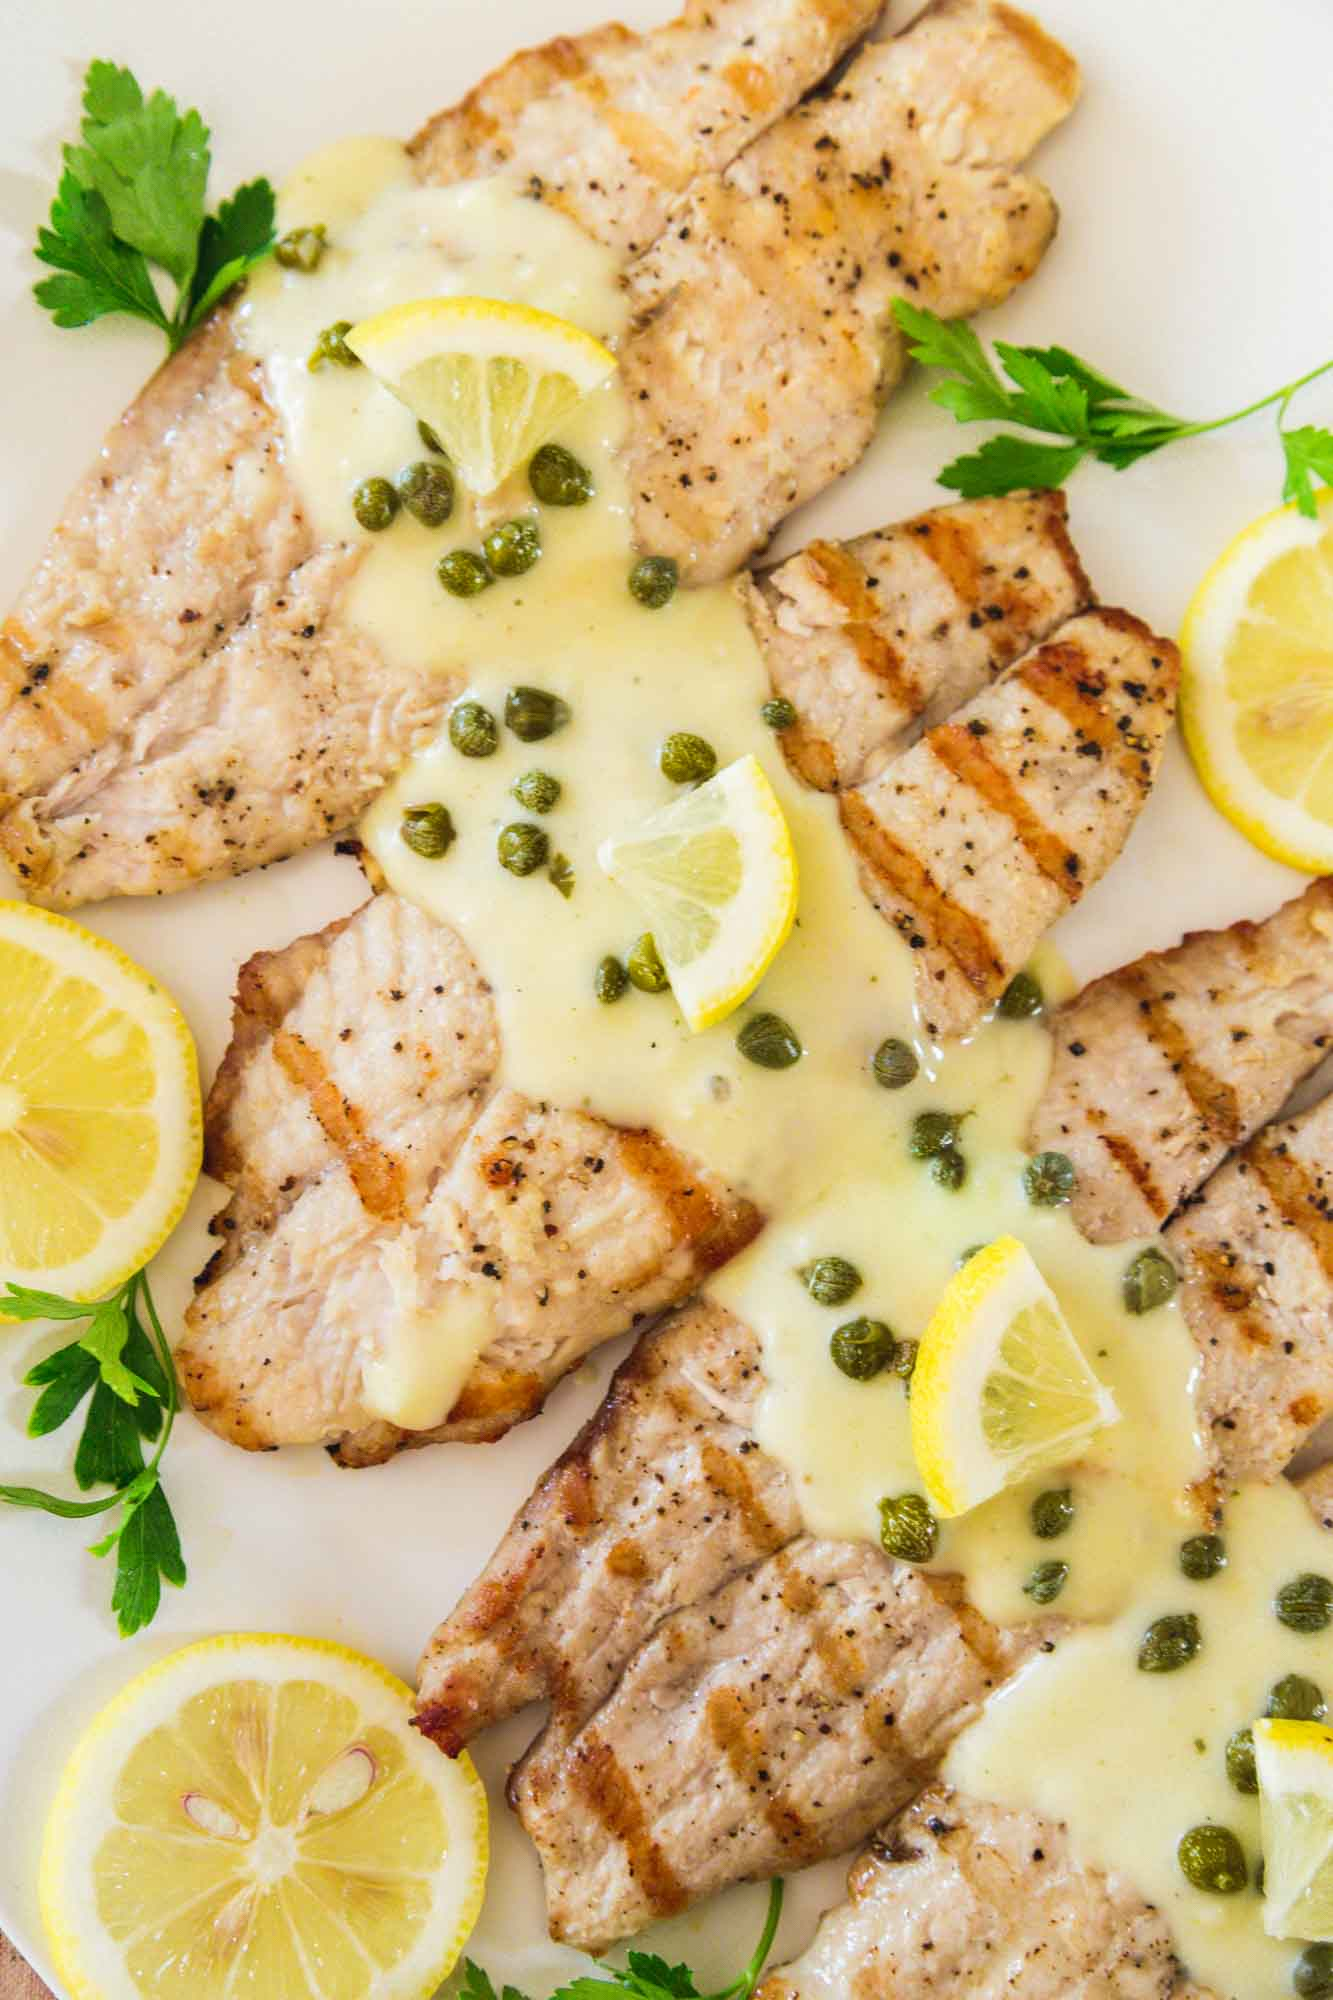 Overhead shot of grilled tilapia on a white platter with piccata sauce and capers